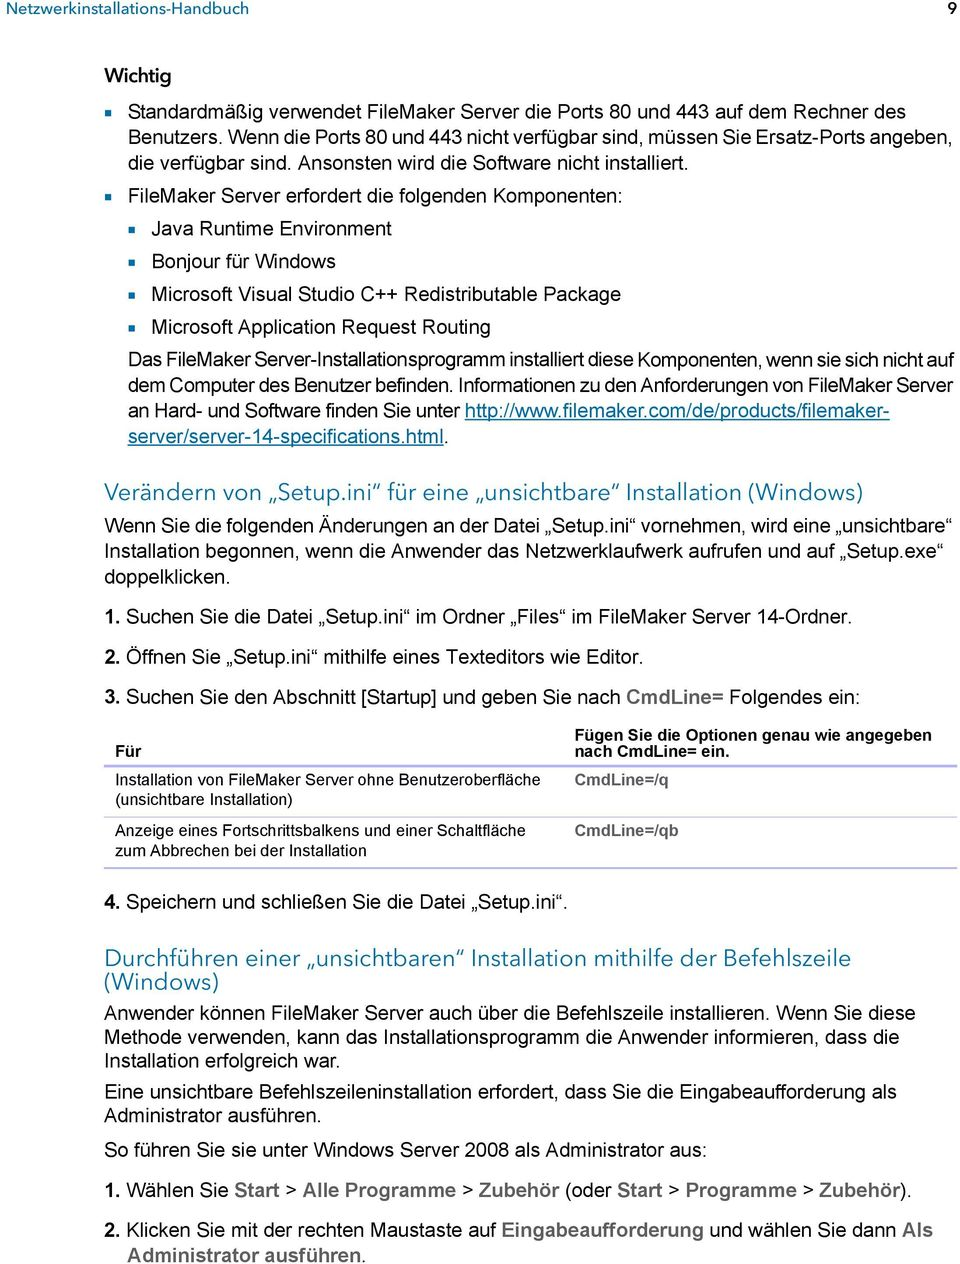 1 FileMaker Server erfordert die folgenden Komponenten: 1 Java Runtime Environment 1 Bonjour für Windows 1 Microsoft Visual Studio C++ Redistributable Package 1 Microsoft Application Request Routing